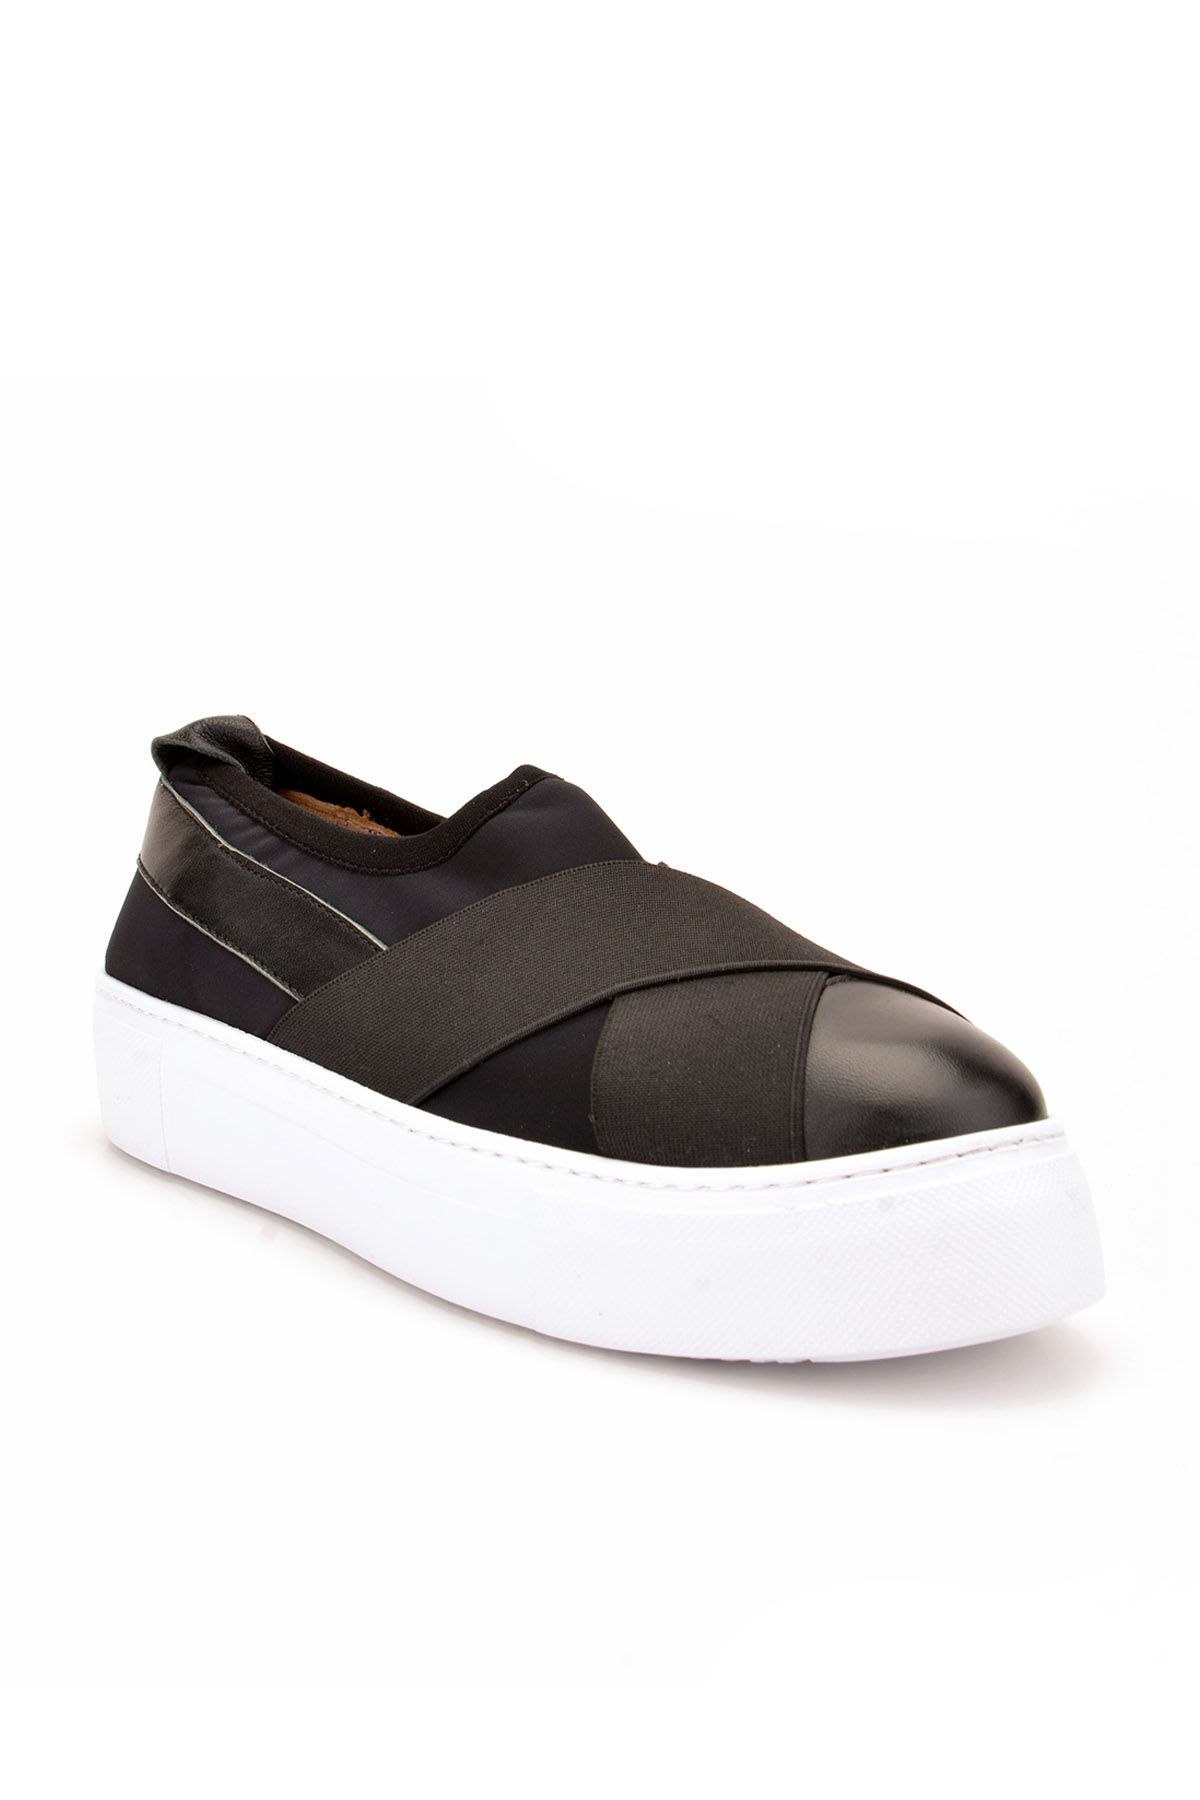 Pegia Voyage Casual Shoes From Genuine Leather Black